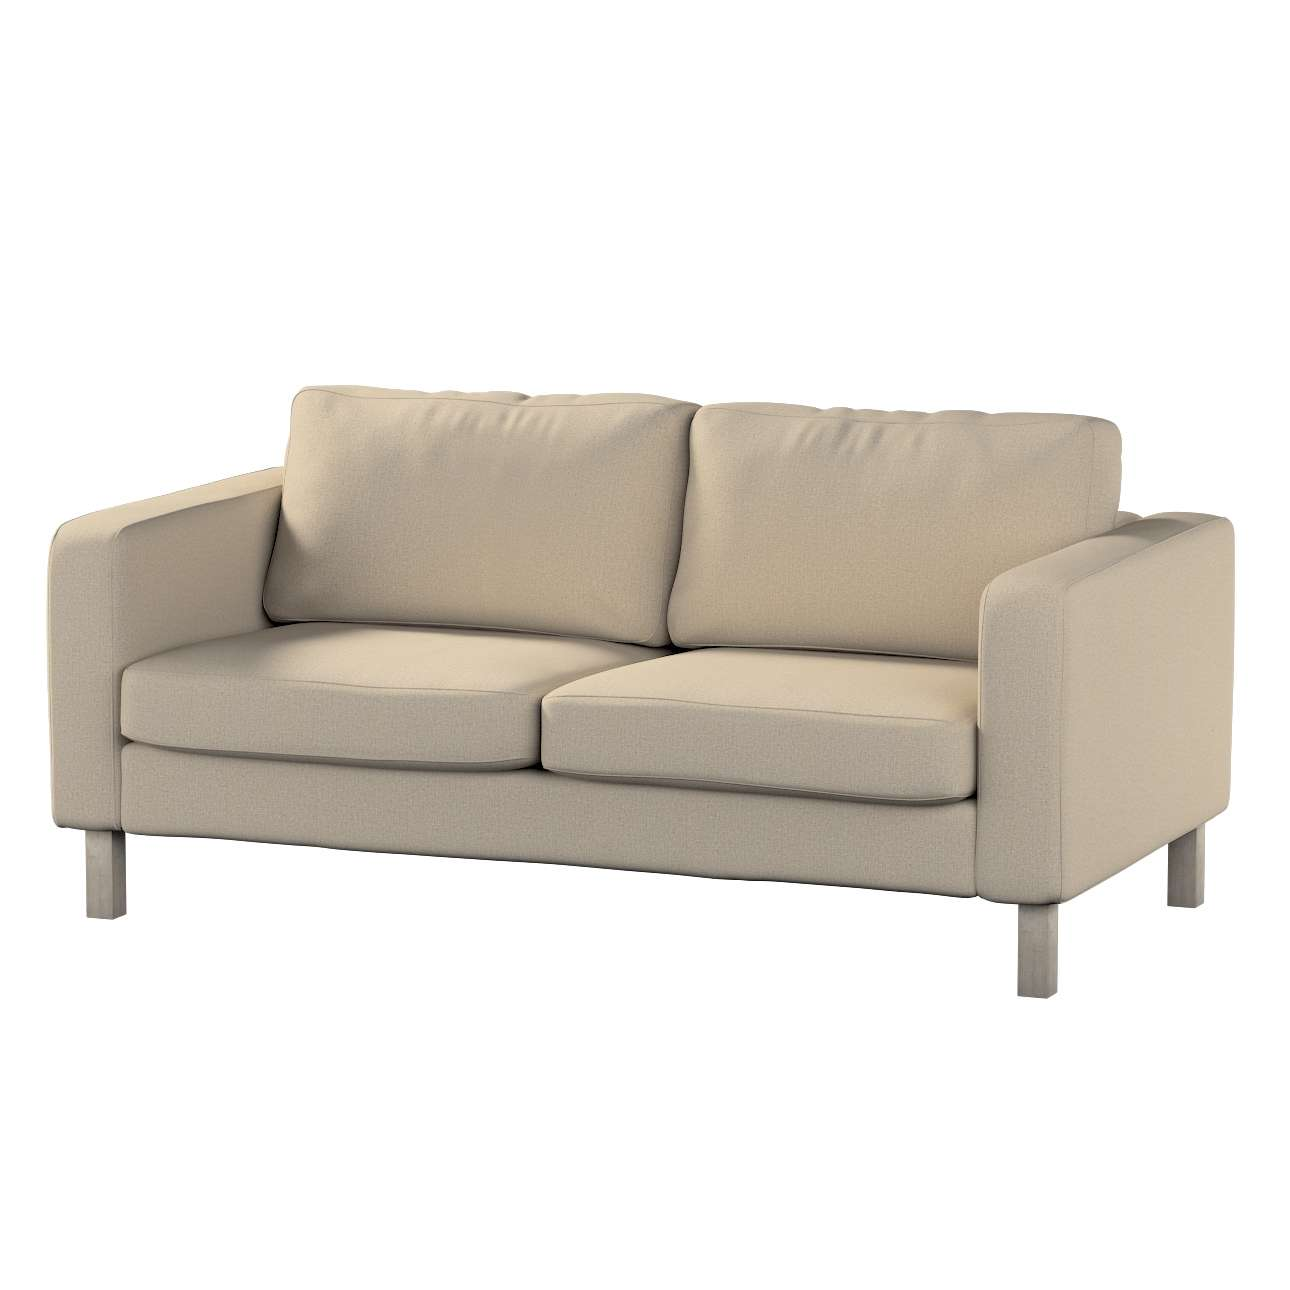 Karlstad 2-seater sofa cover in collection Edinburgh, fabric: 115-78